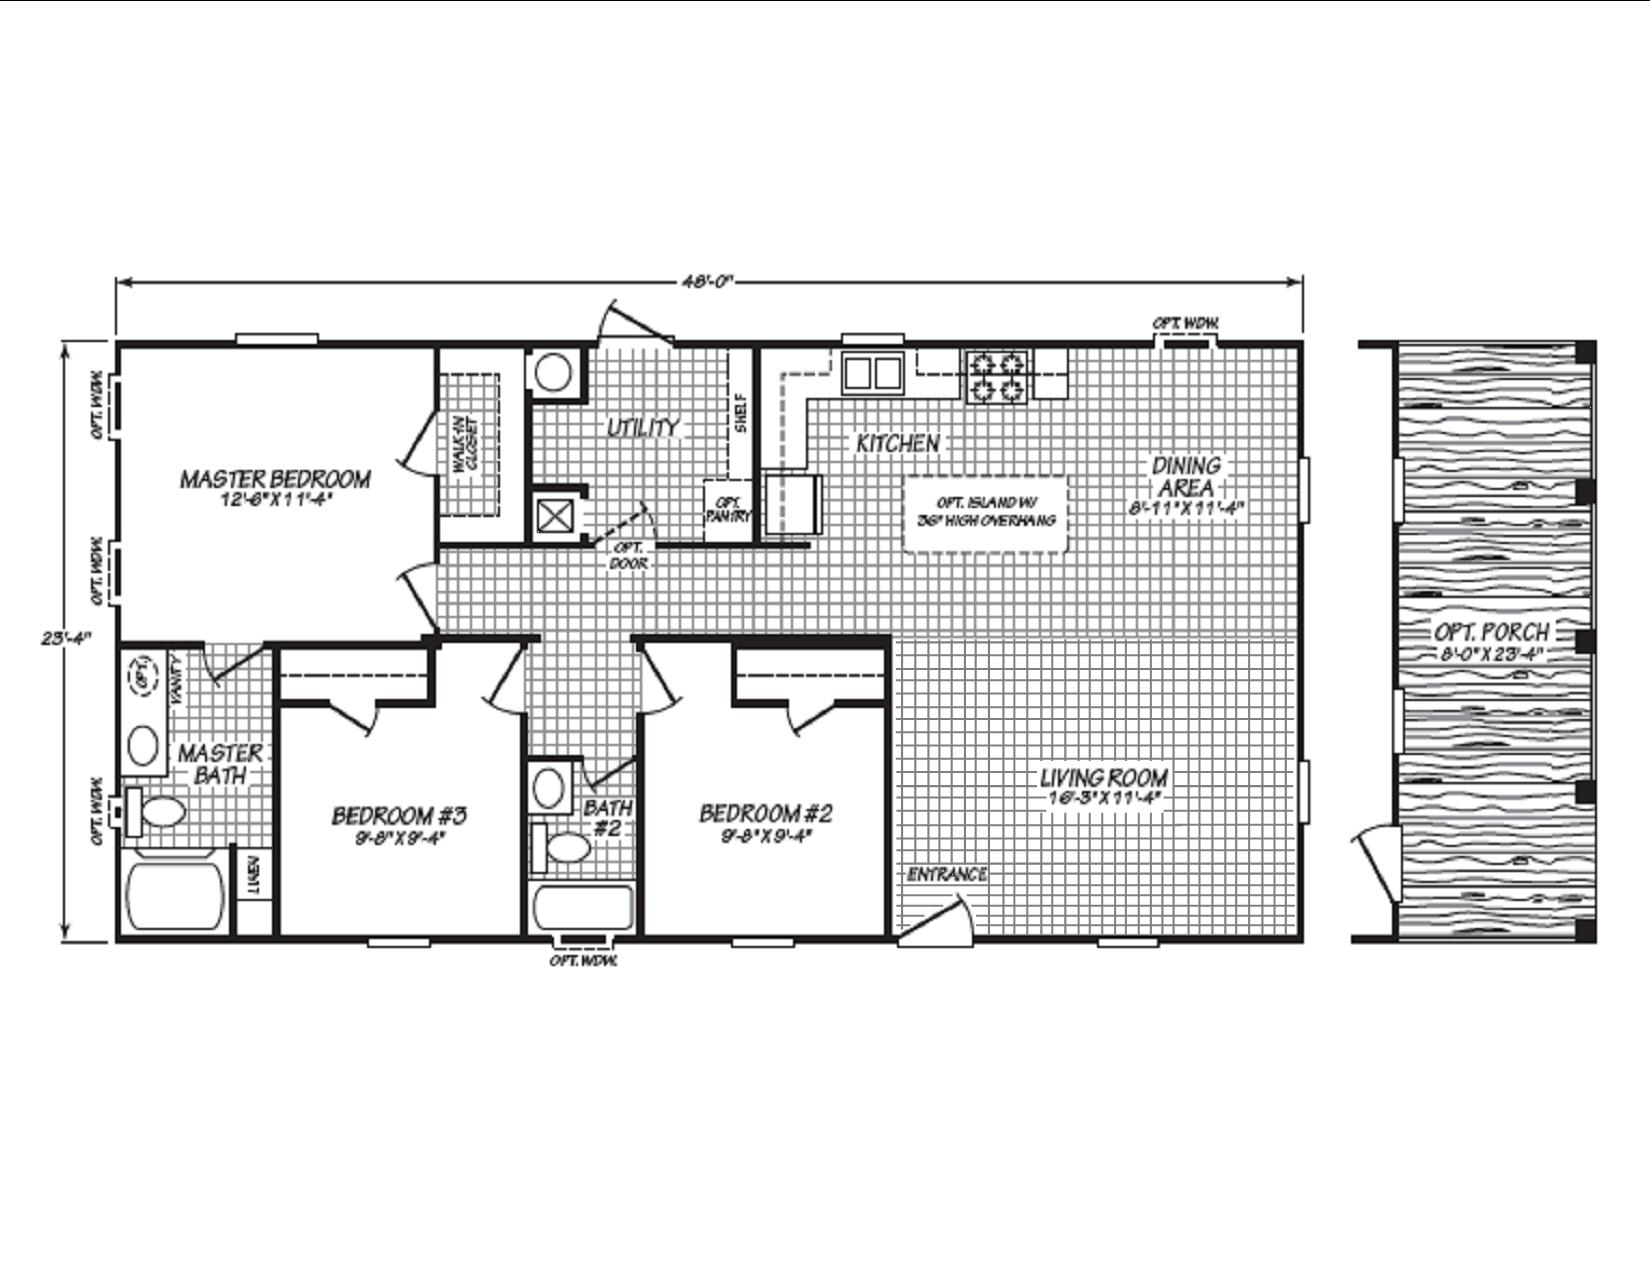 434 Fleetwood 24483P Floor Plan